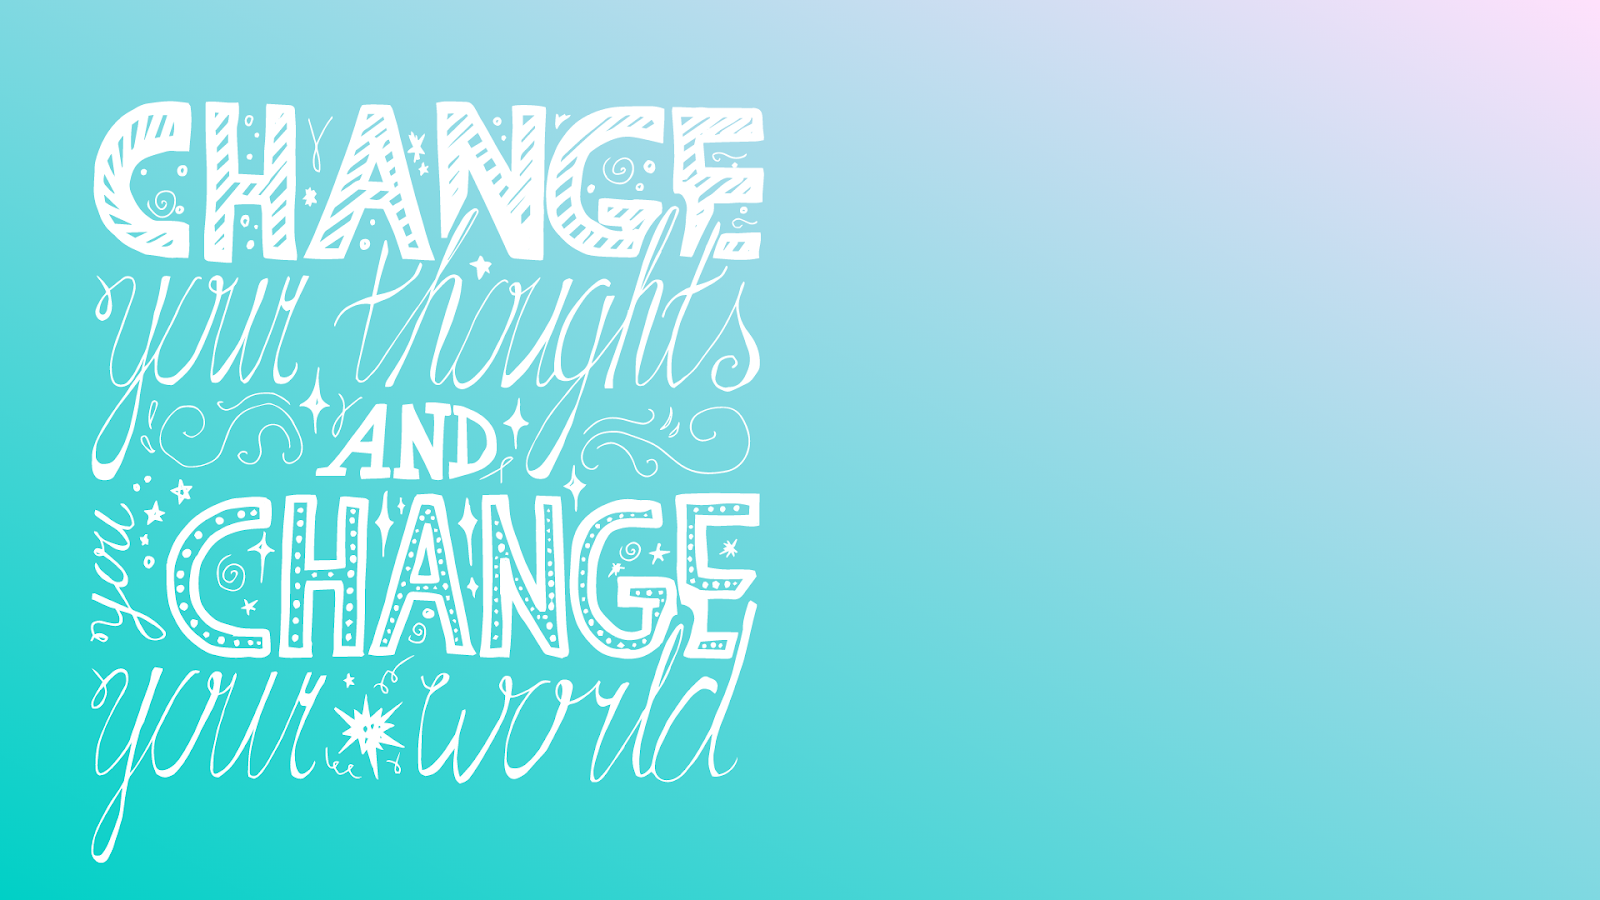 change your thoughts and change the world